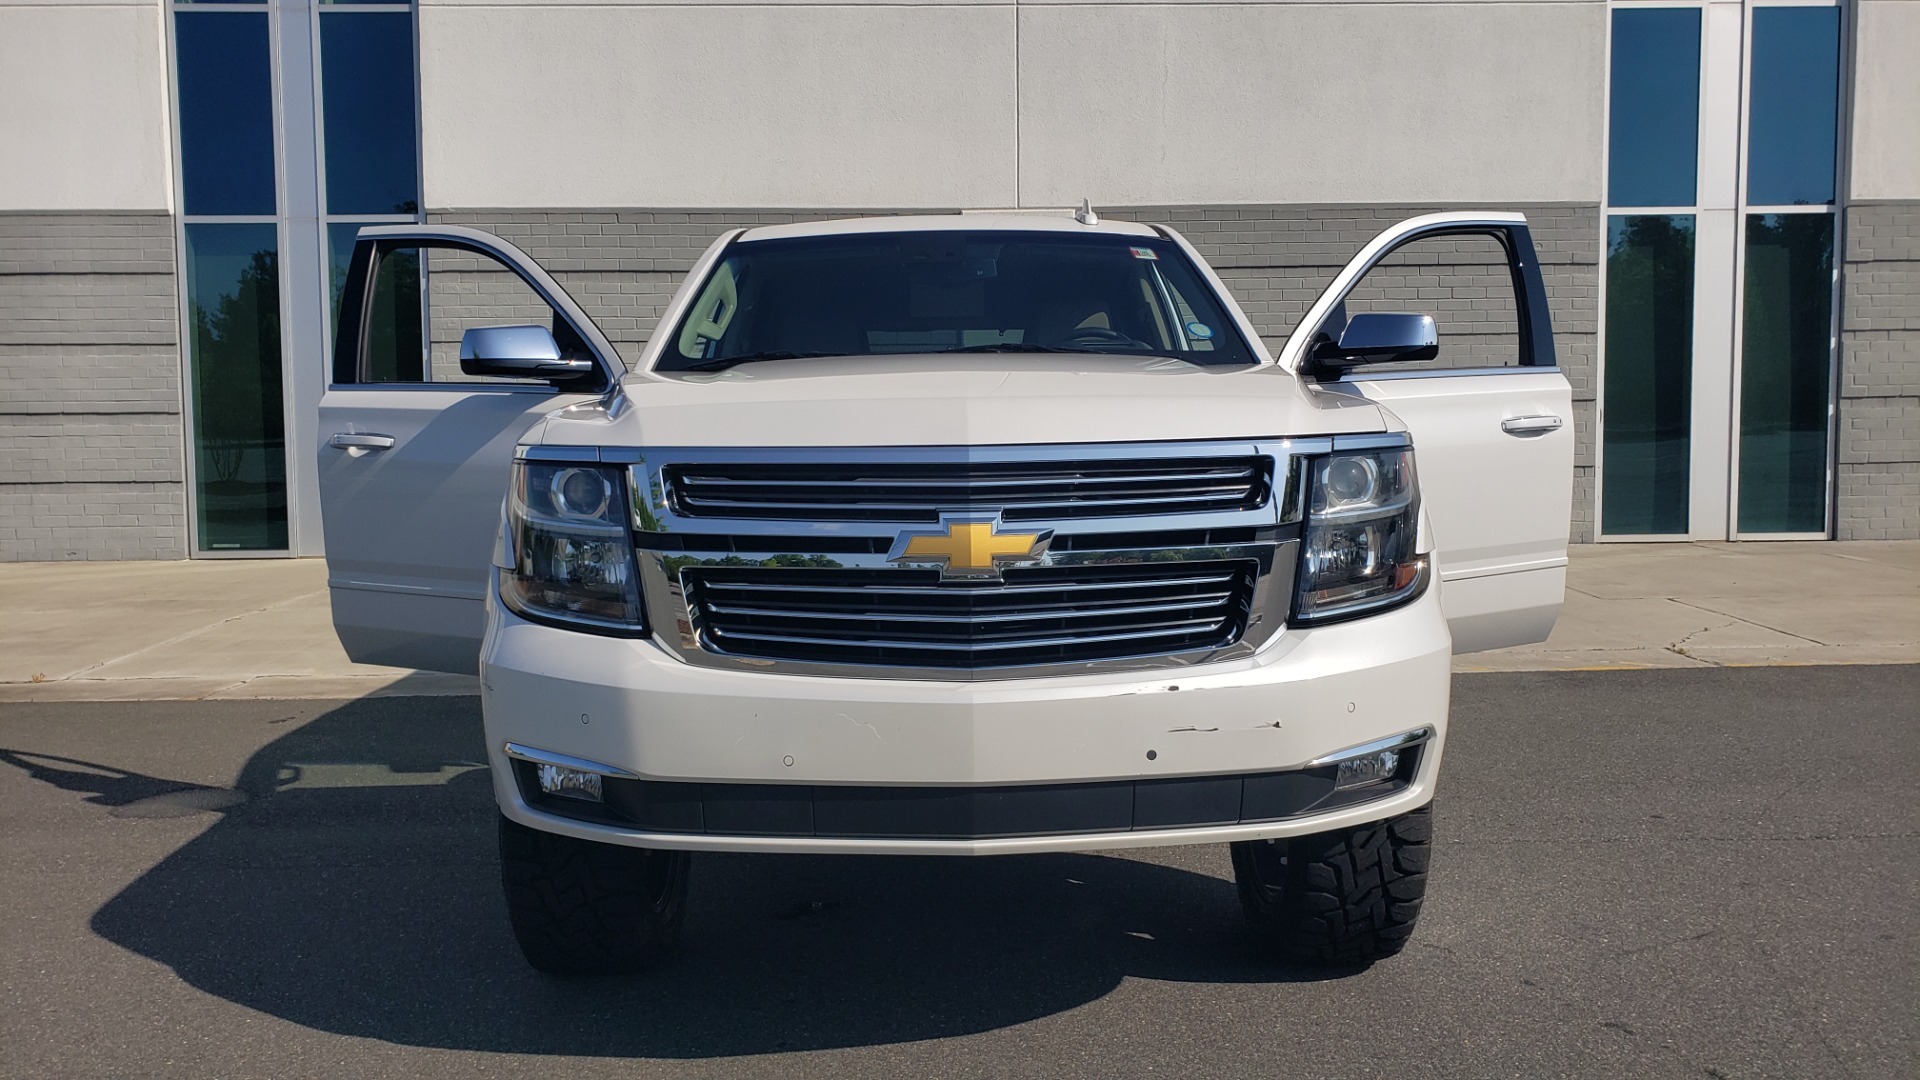 Used 2018 Chevrolet TAHOE PREMIER 4X4 / NAV / BOSE / SUNROOF / ENT SYS / 3-ROW / REARVIEW for sale $55,995 at Formula Imports in Charlotte NC 28227 27